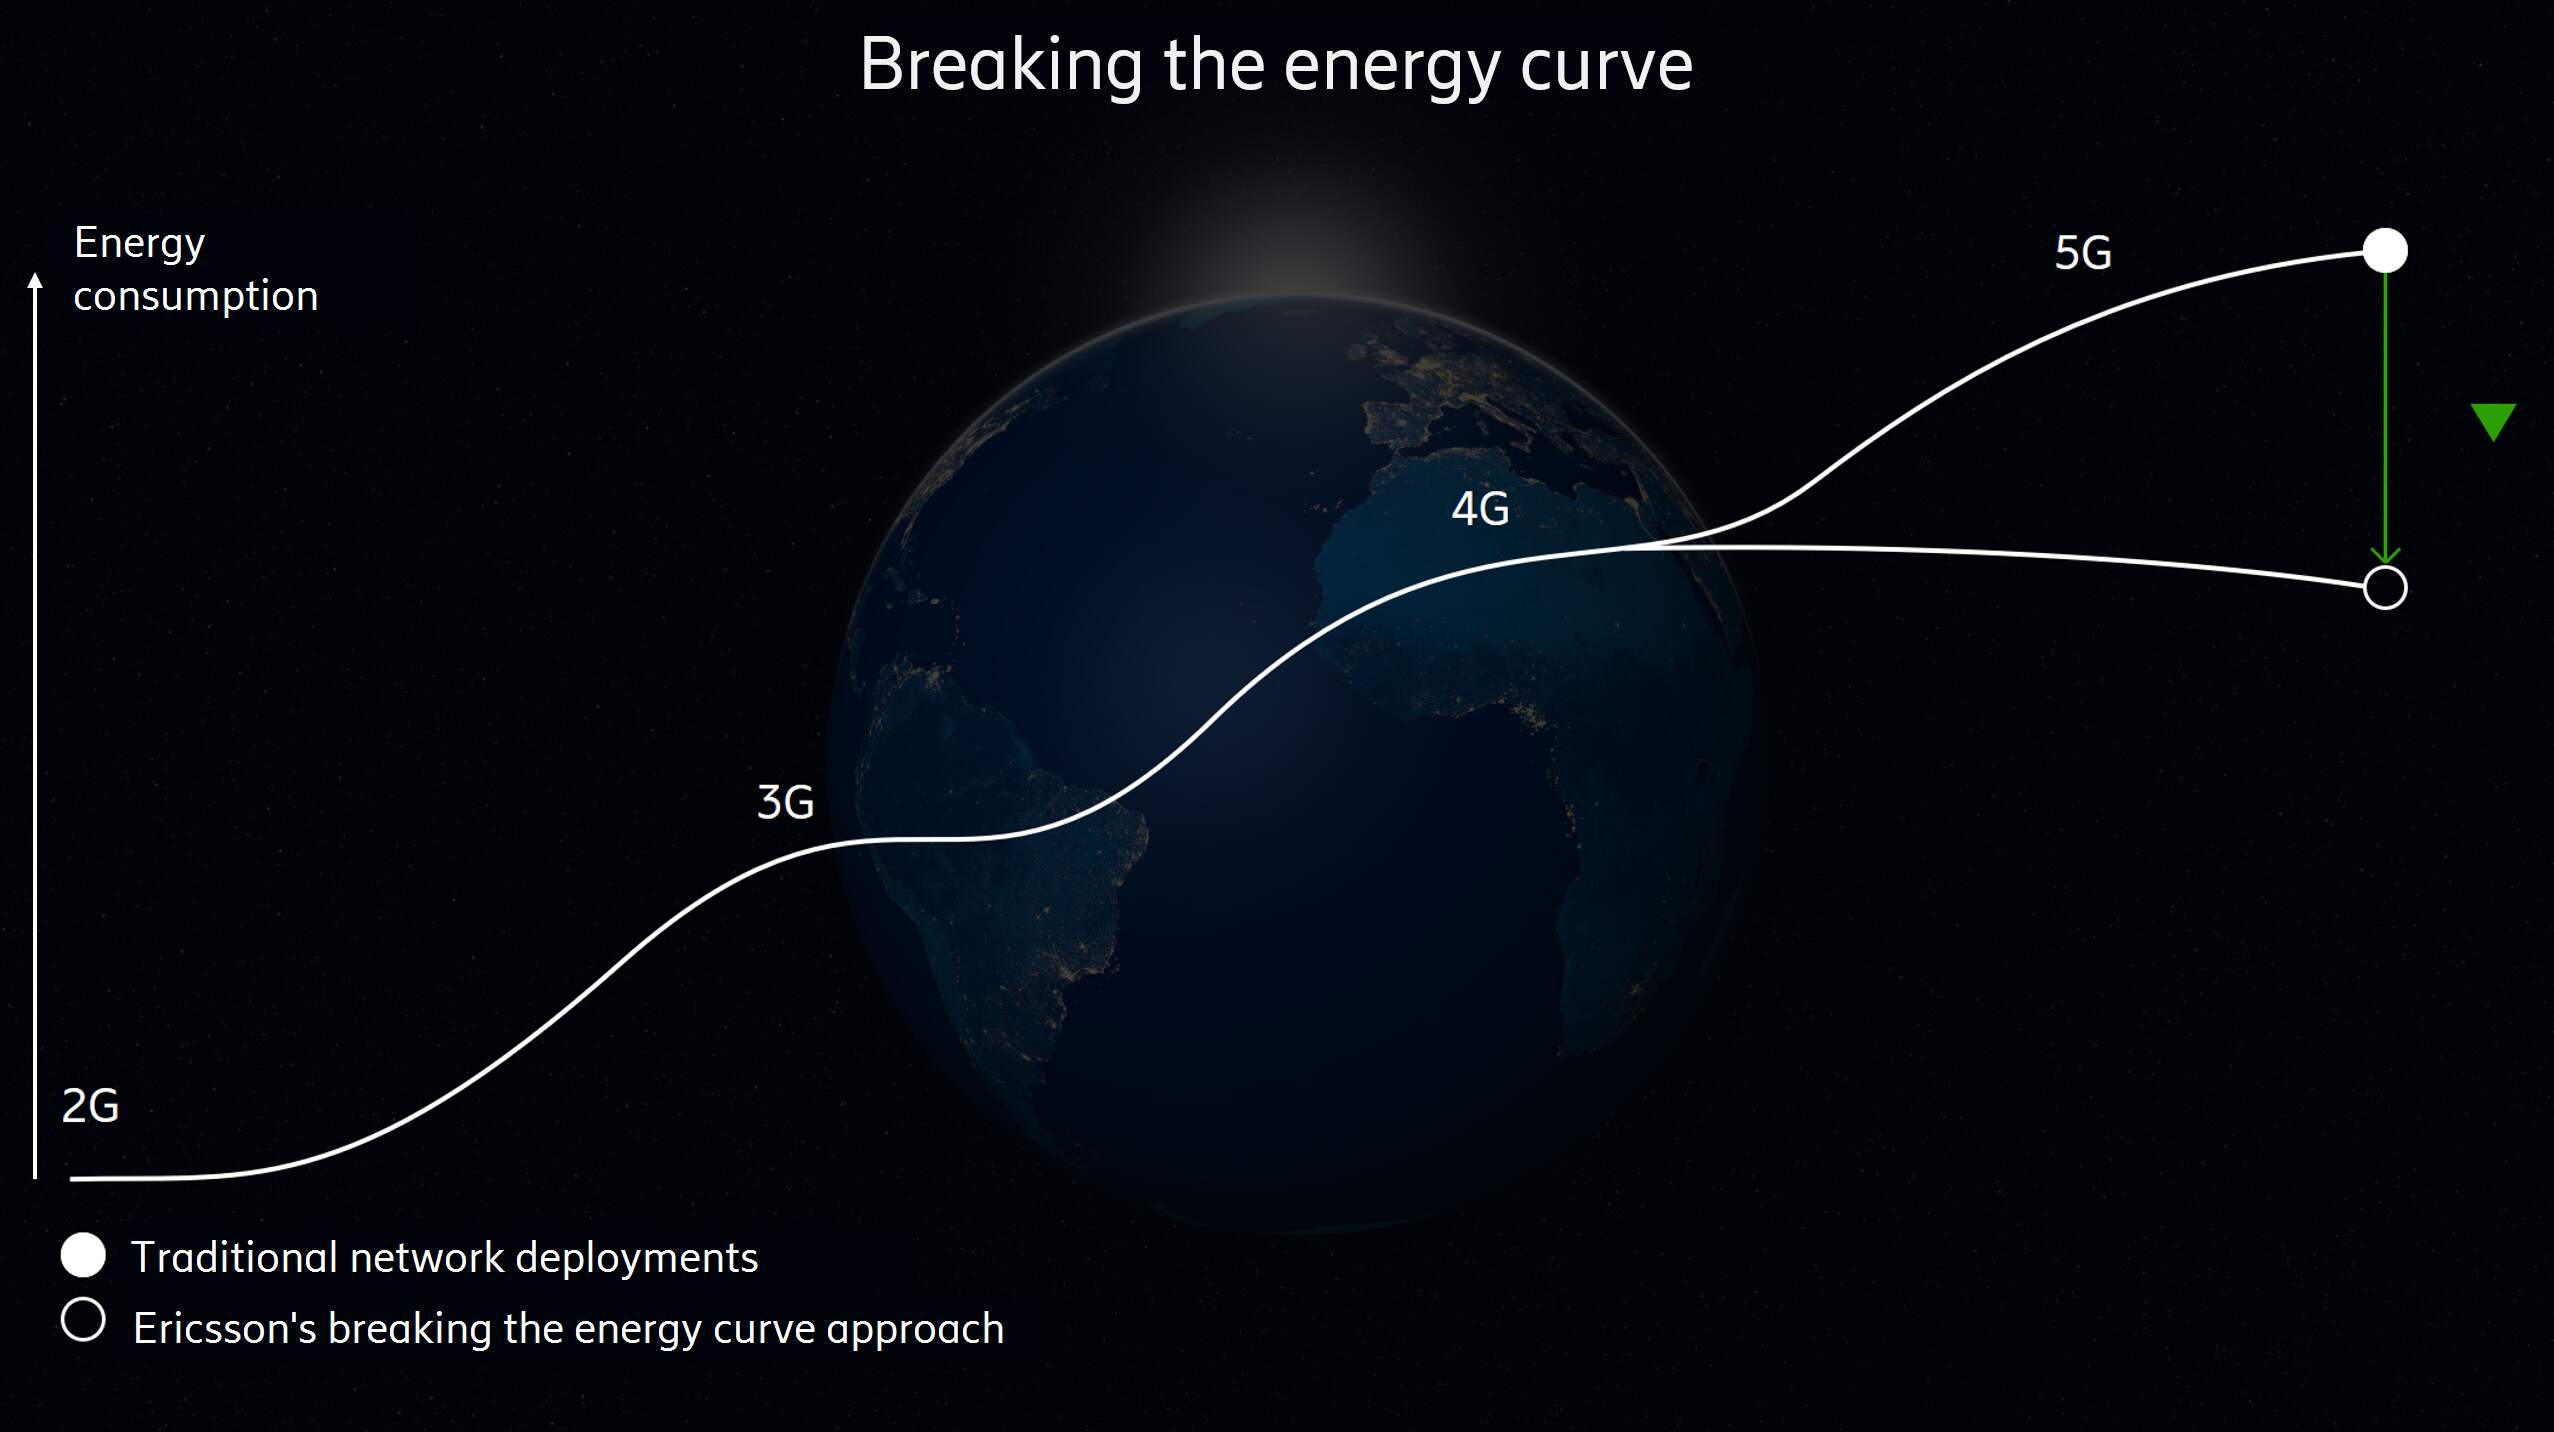 Breaking the energy curve